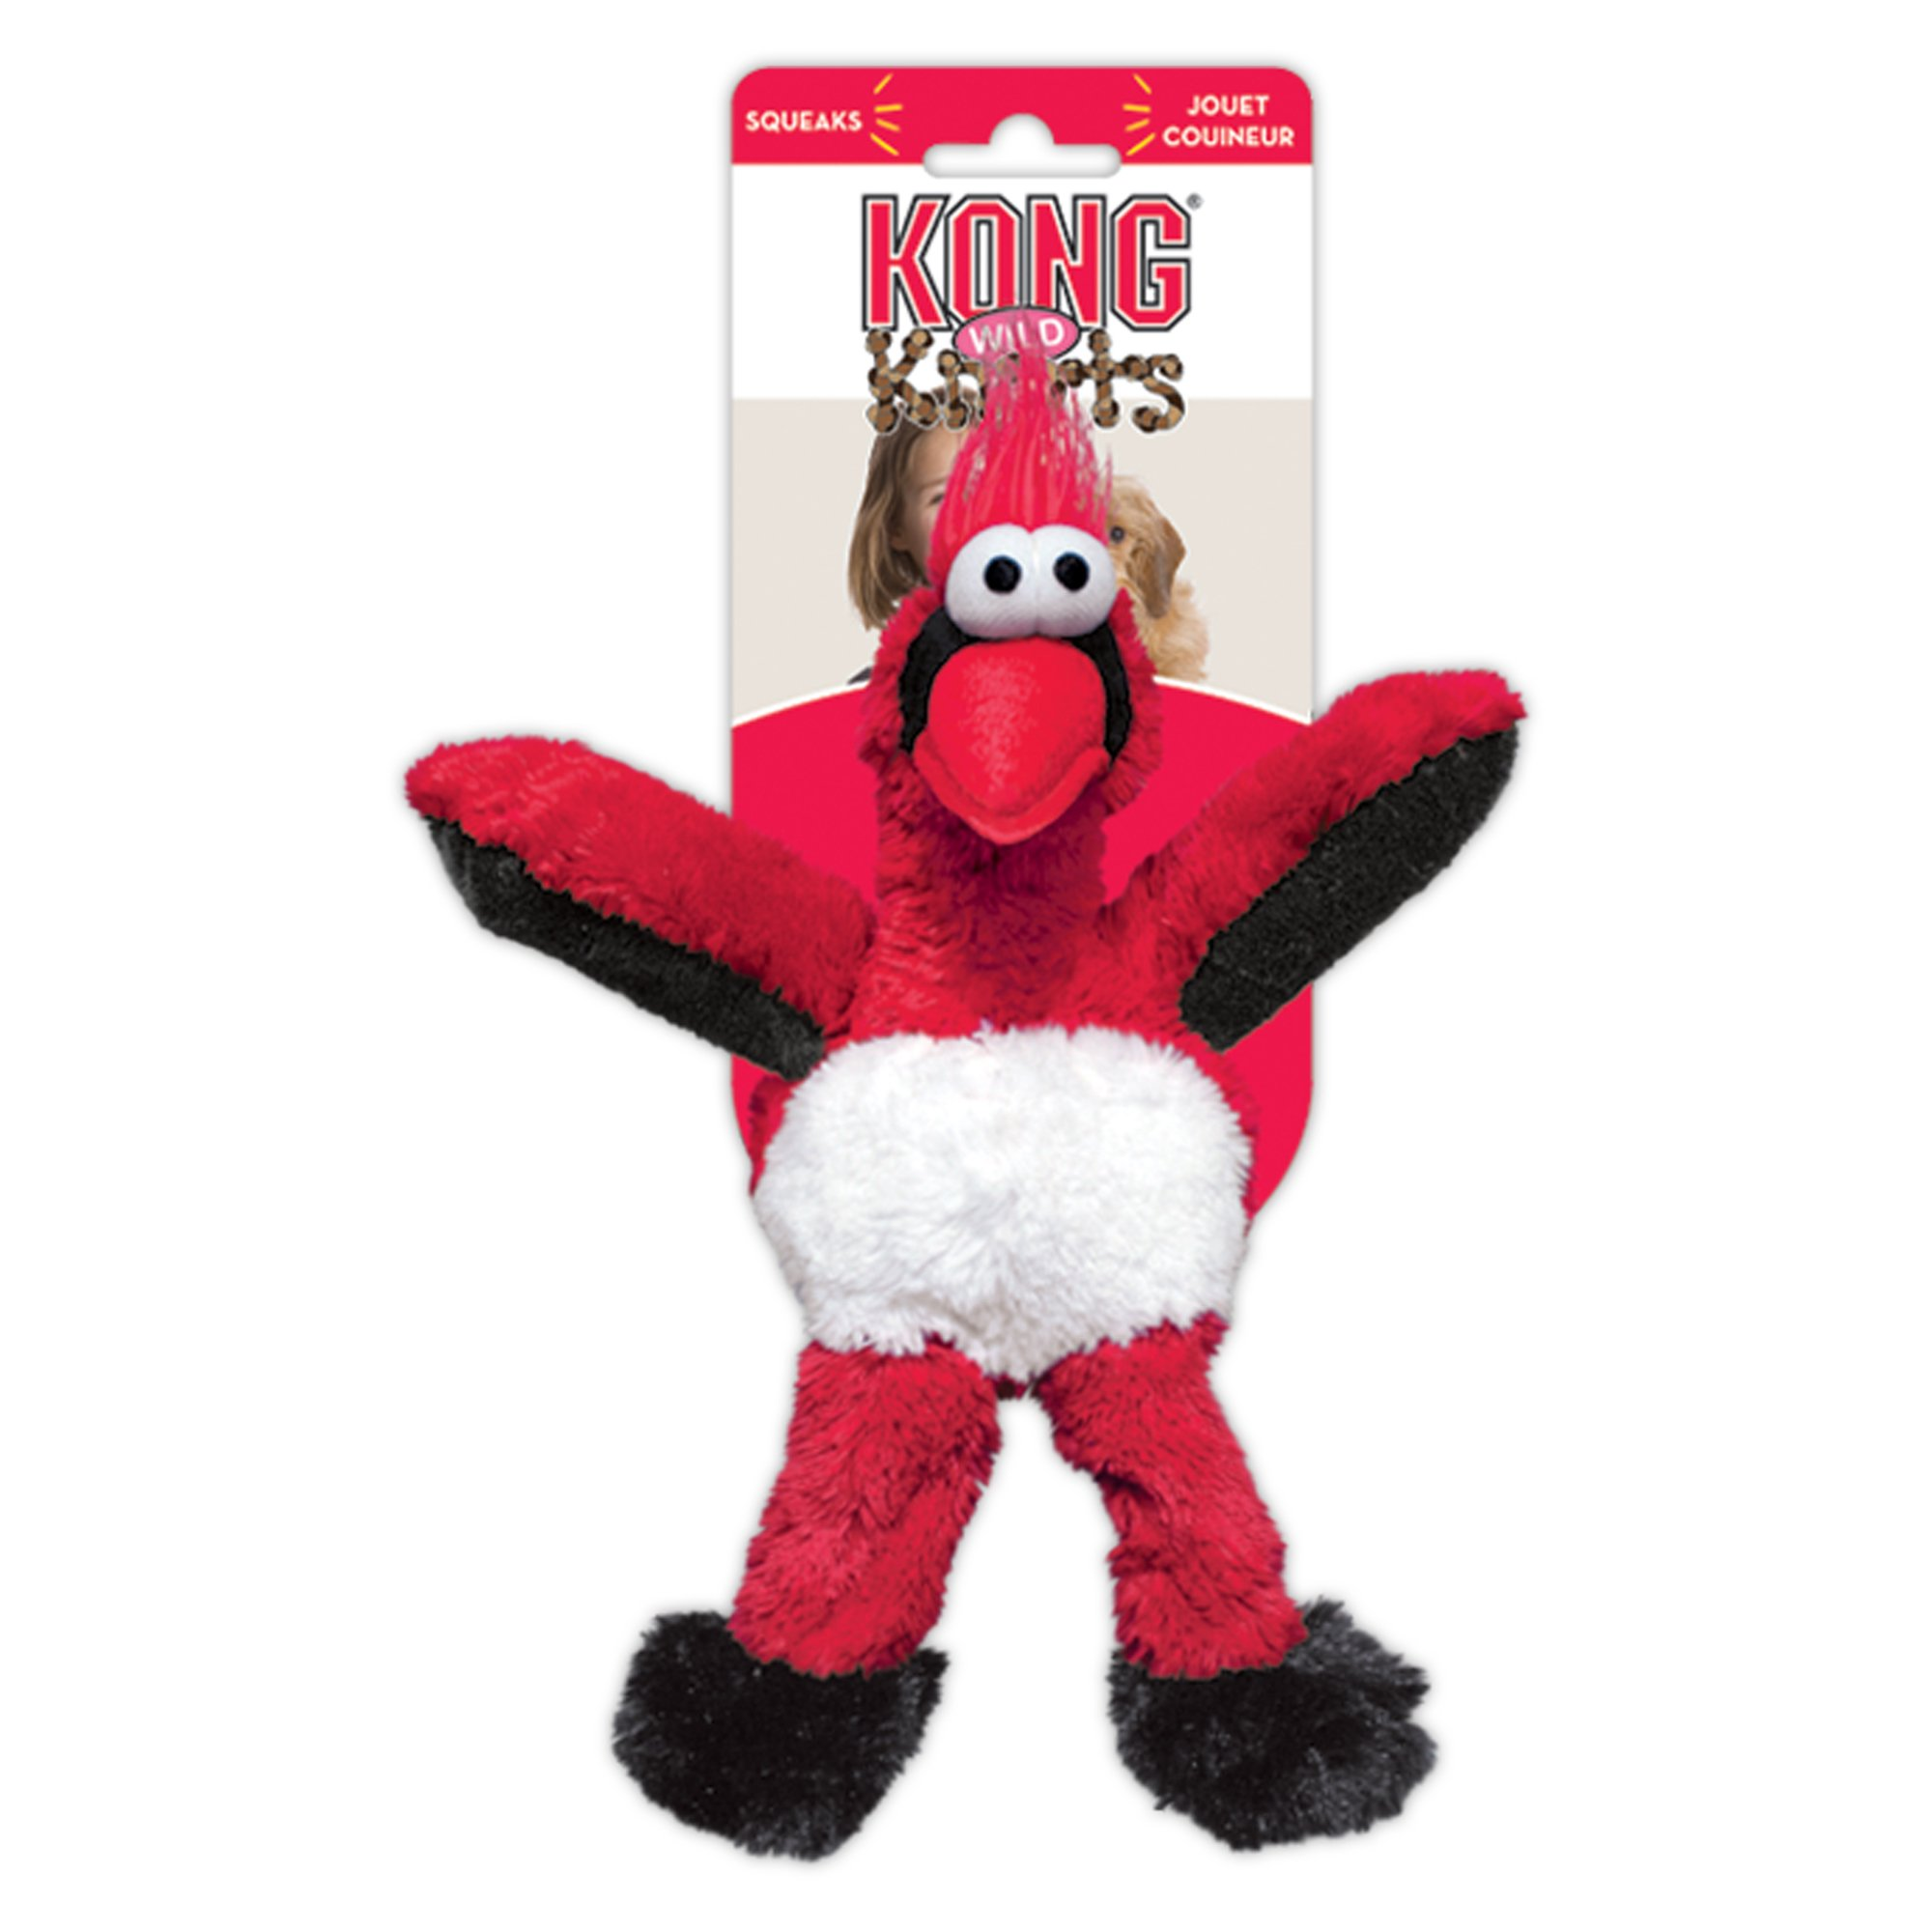 Kong Wild Knots Cardinal Dog Toy Small Red Dog Toys Plush